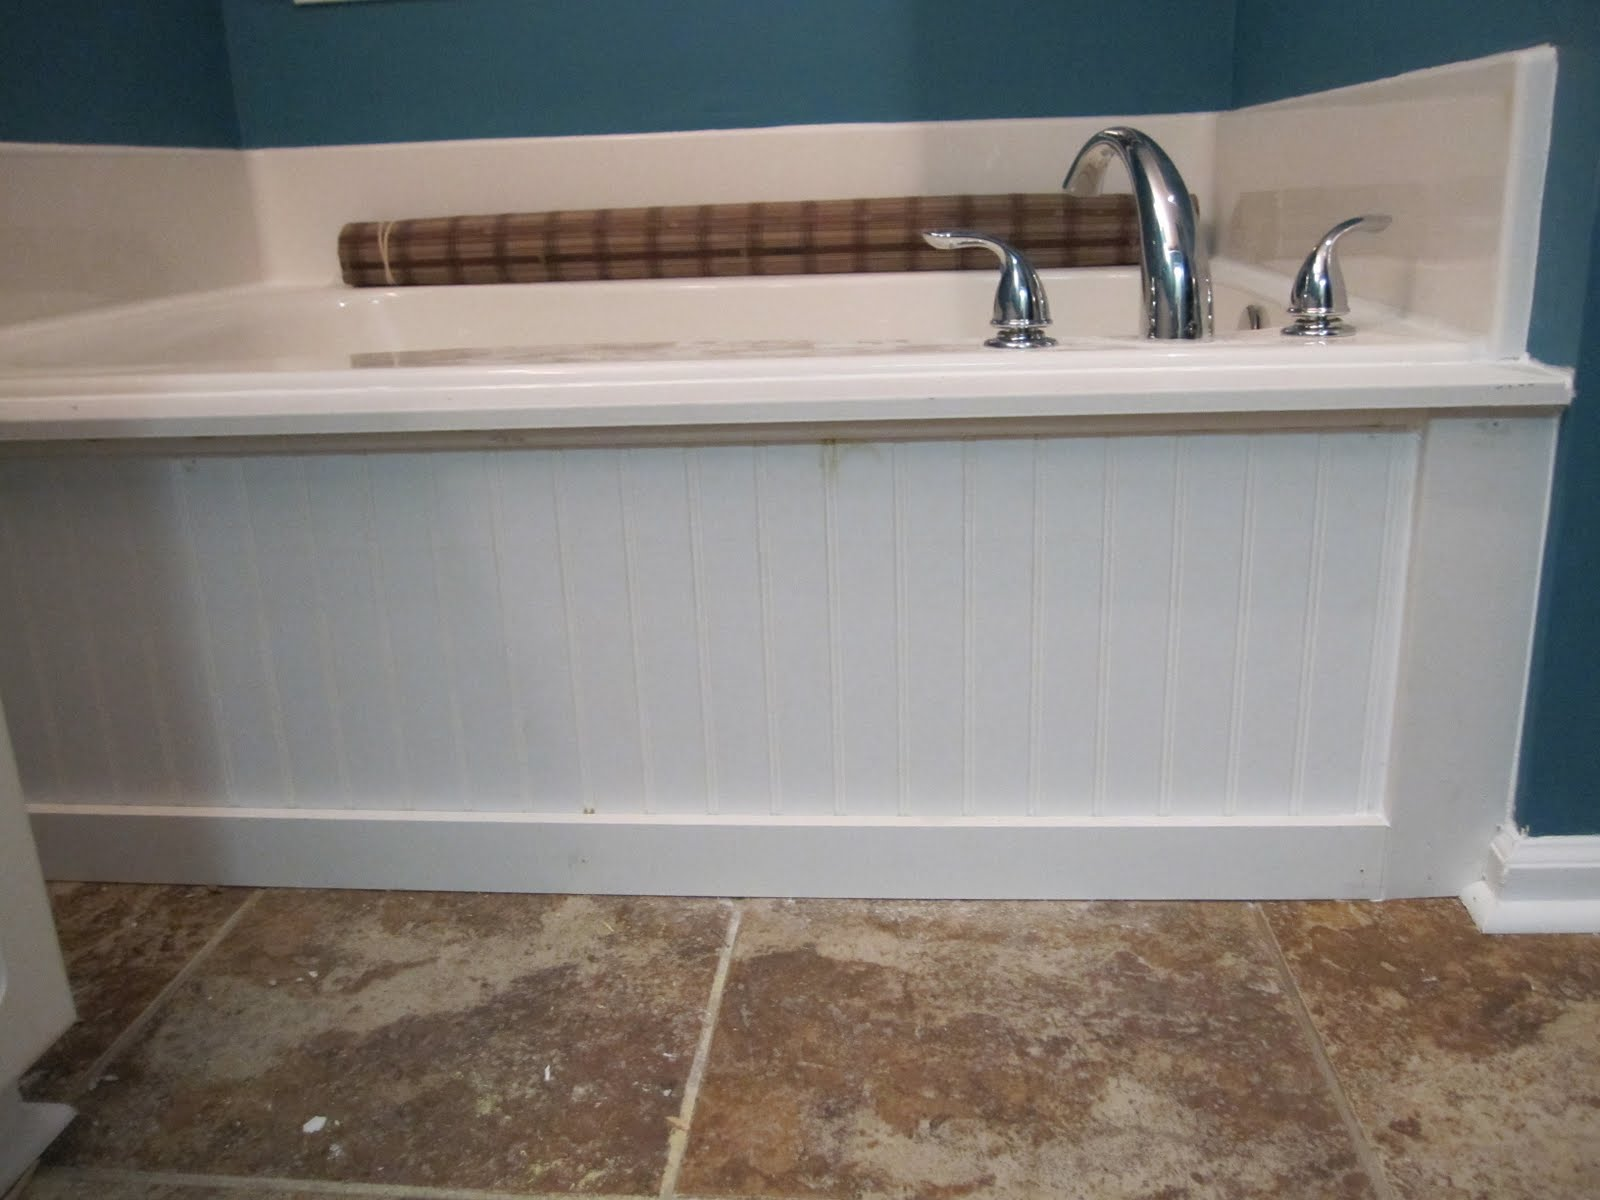 Standard tub into a build in tub (faux that is)